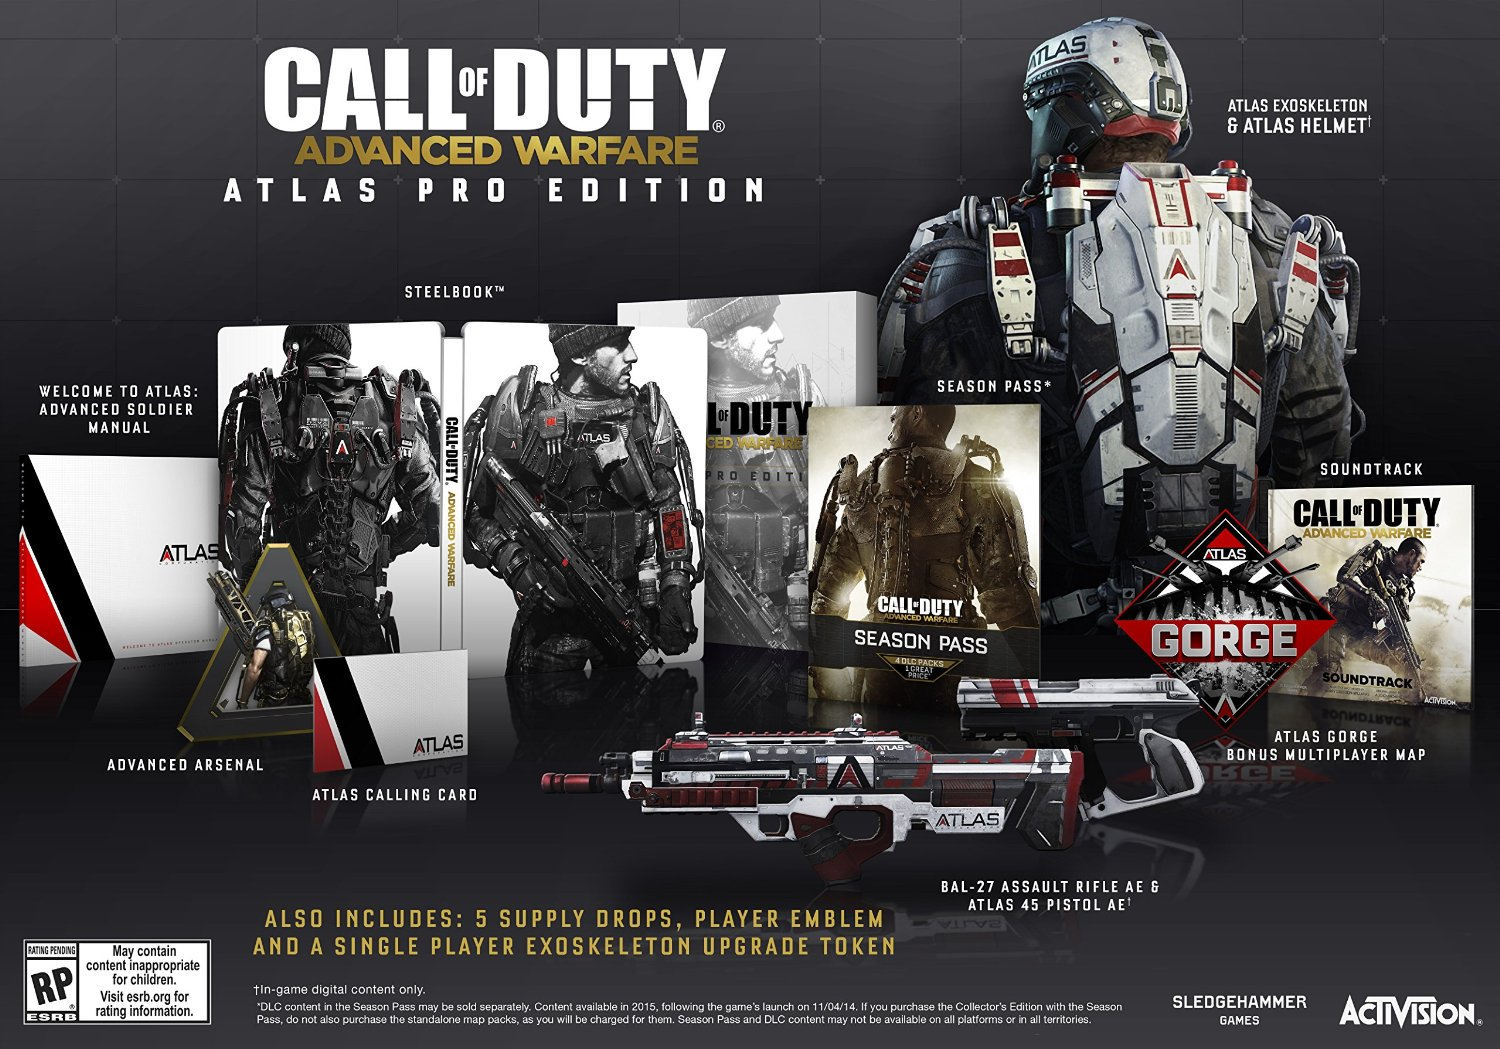 Call of Duty Advanced Warfare Atlas Pro Edition - PlayStation 4